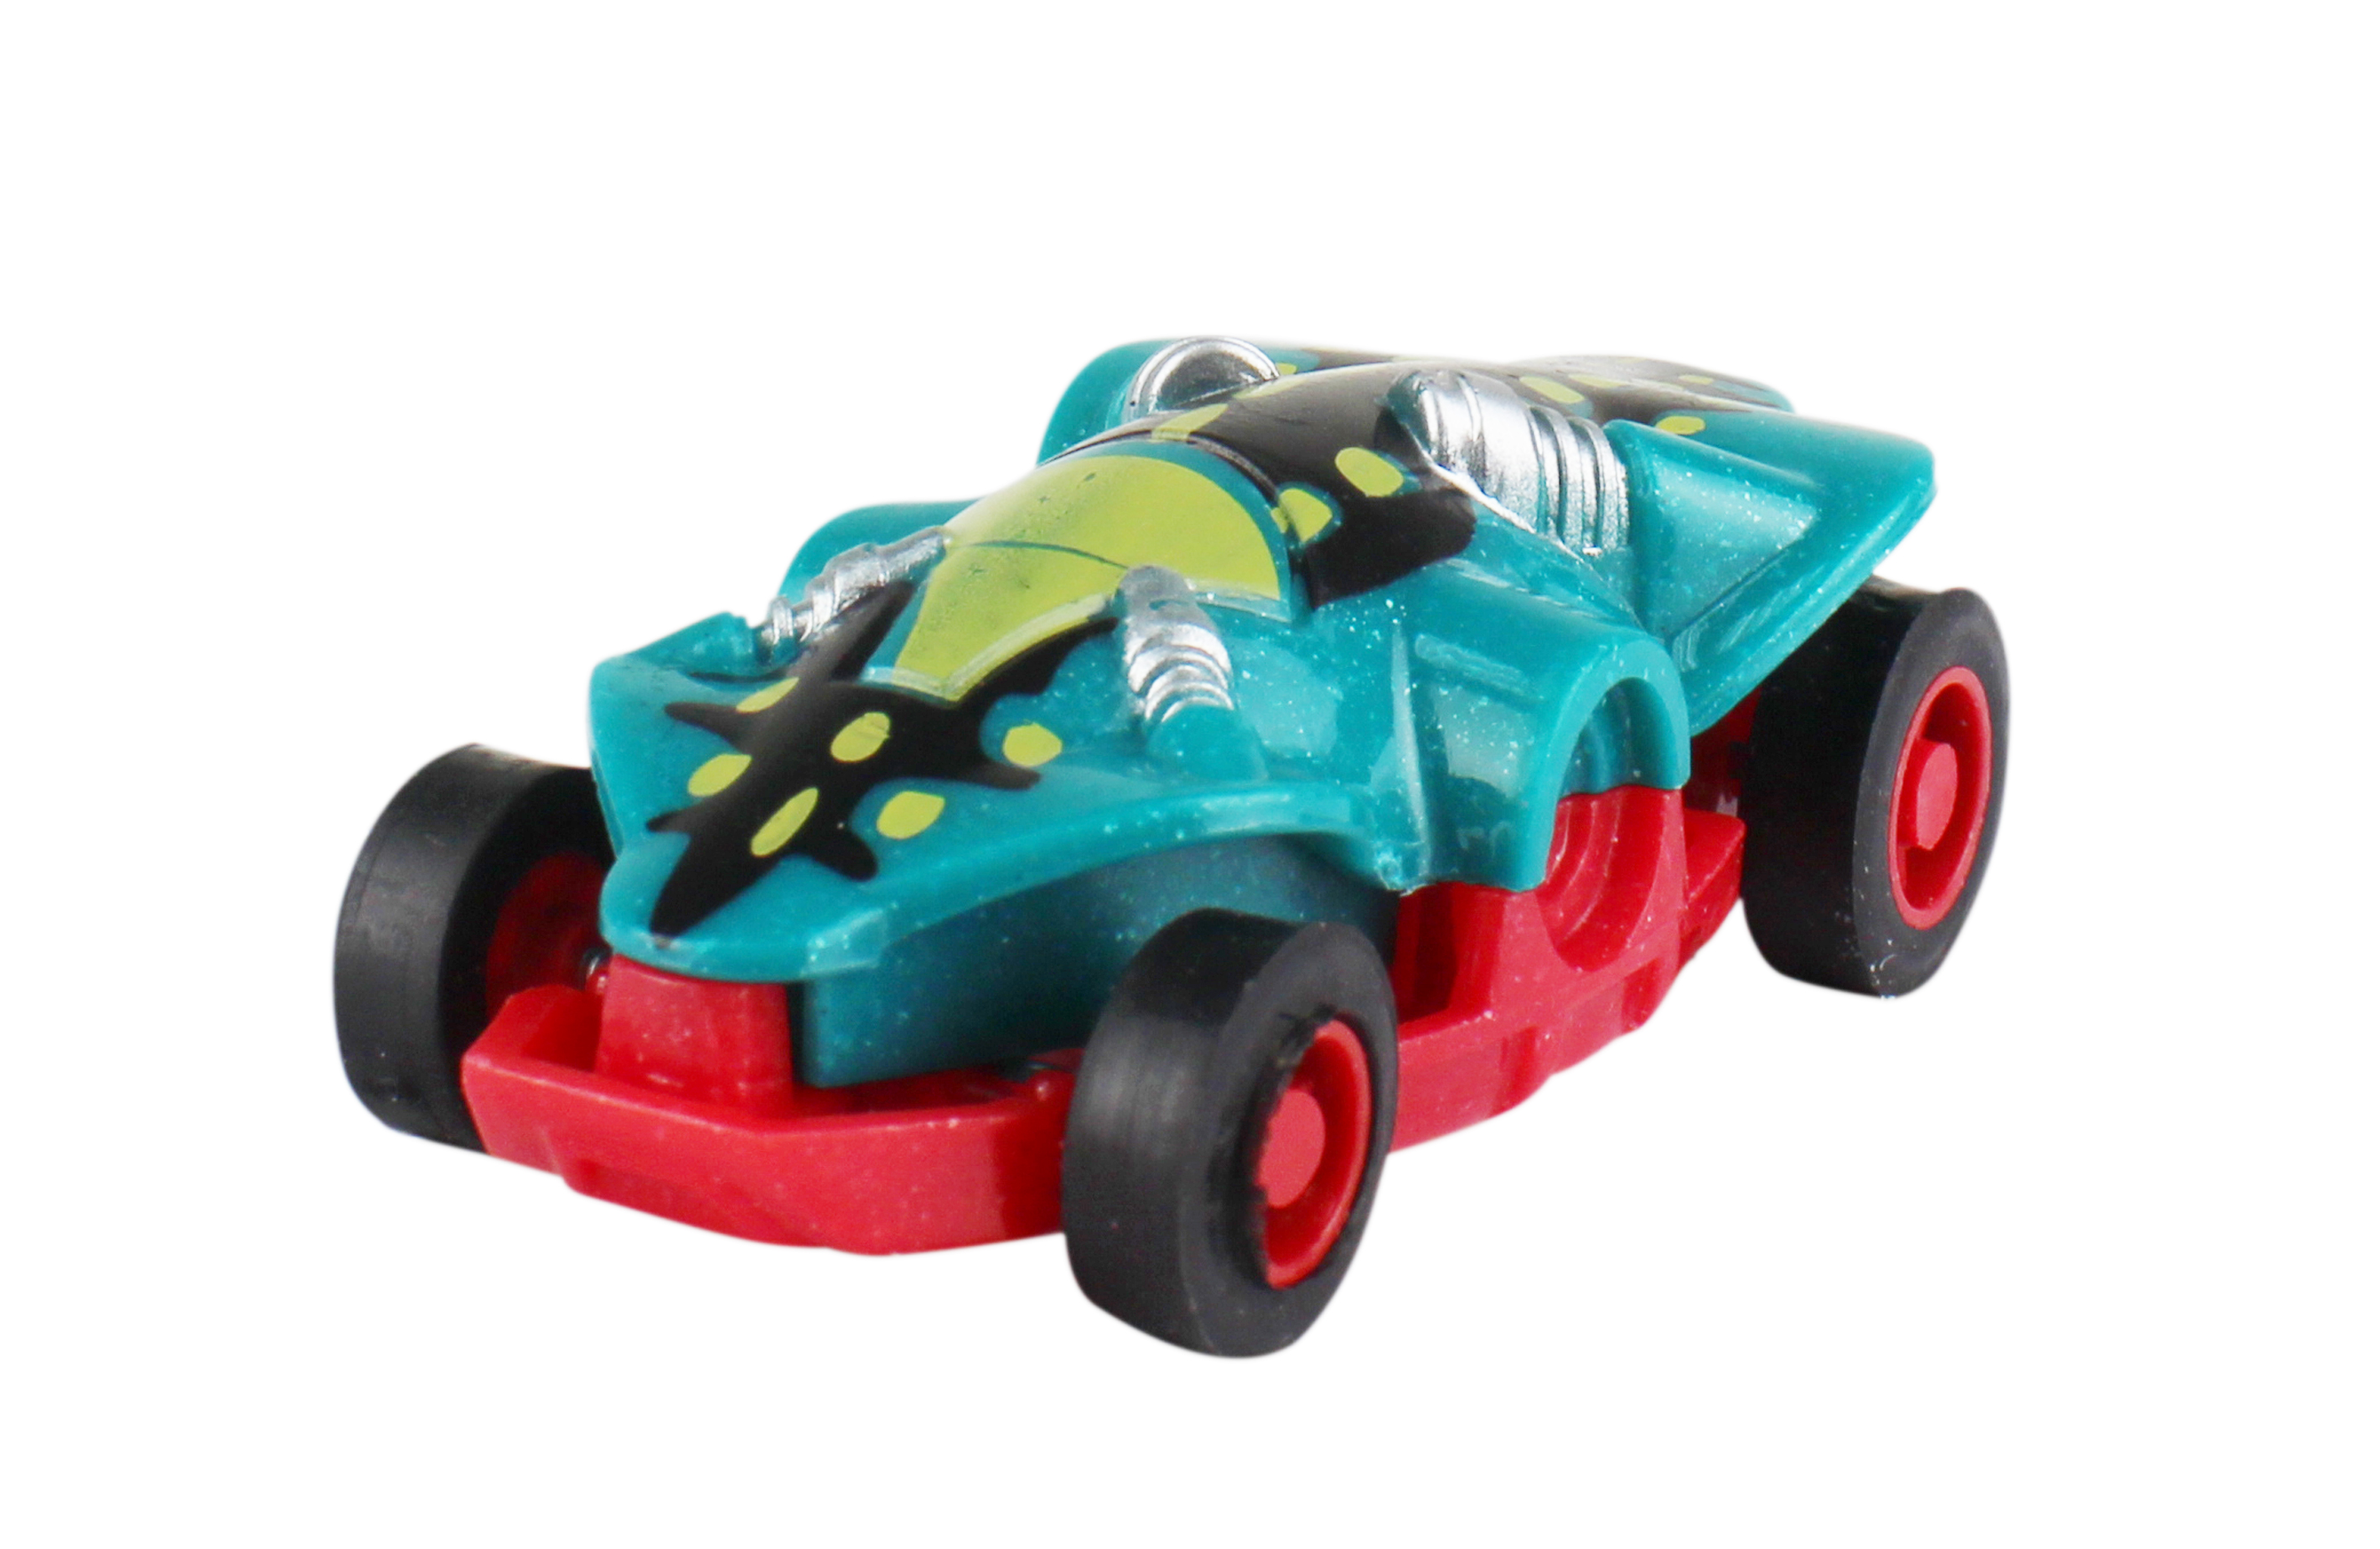 Машинка 1toy Top Gear-Croco Monster Т10331 машинки и мотоциклы 1toy top gear black lord т10318